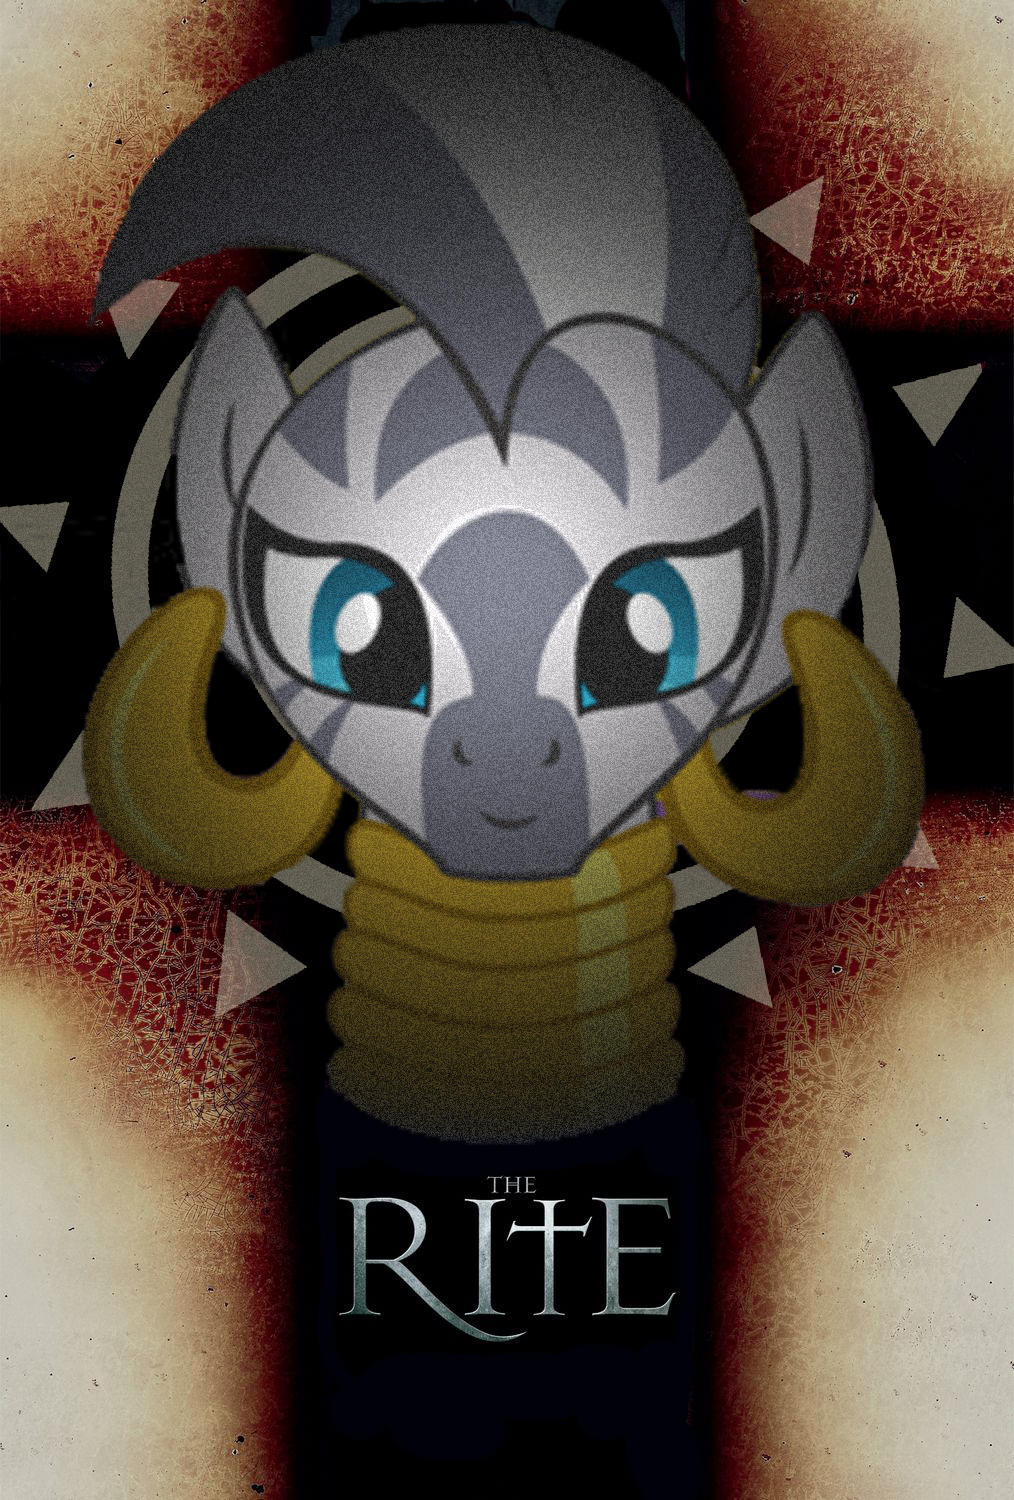 The Rite - Zecora by normanb88